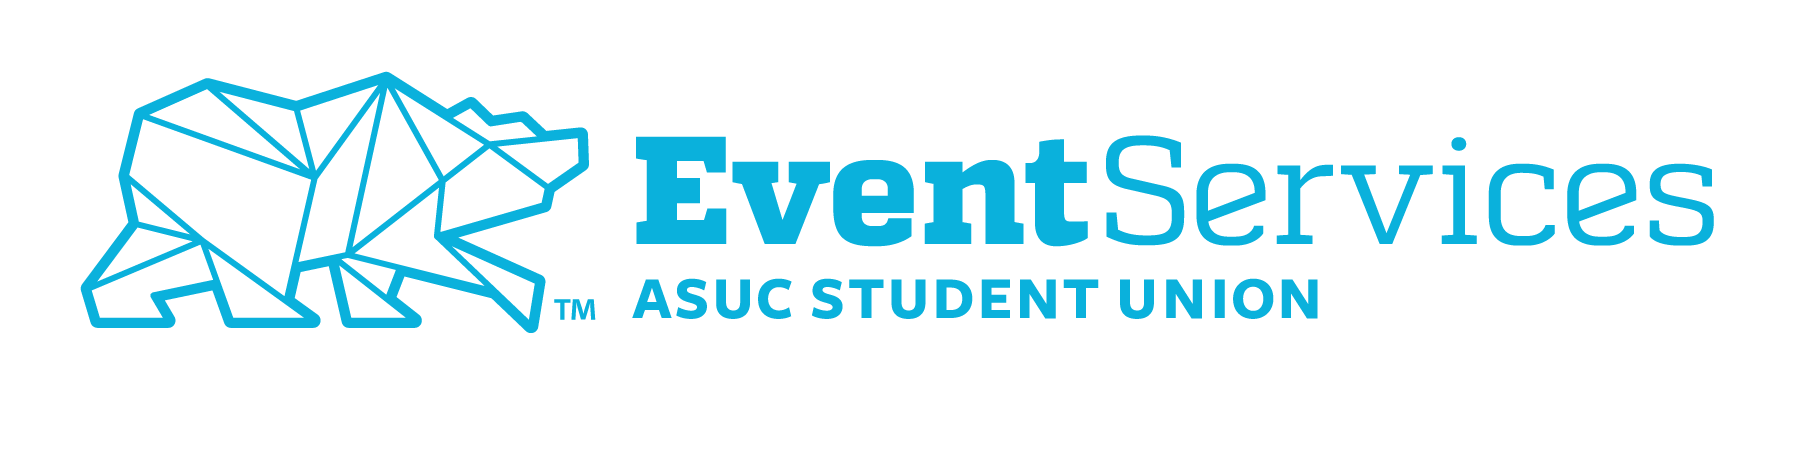 Download event services logo Horizontal in teal